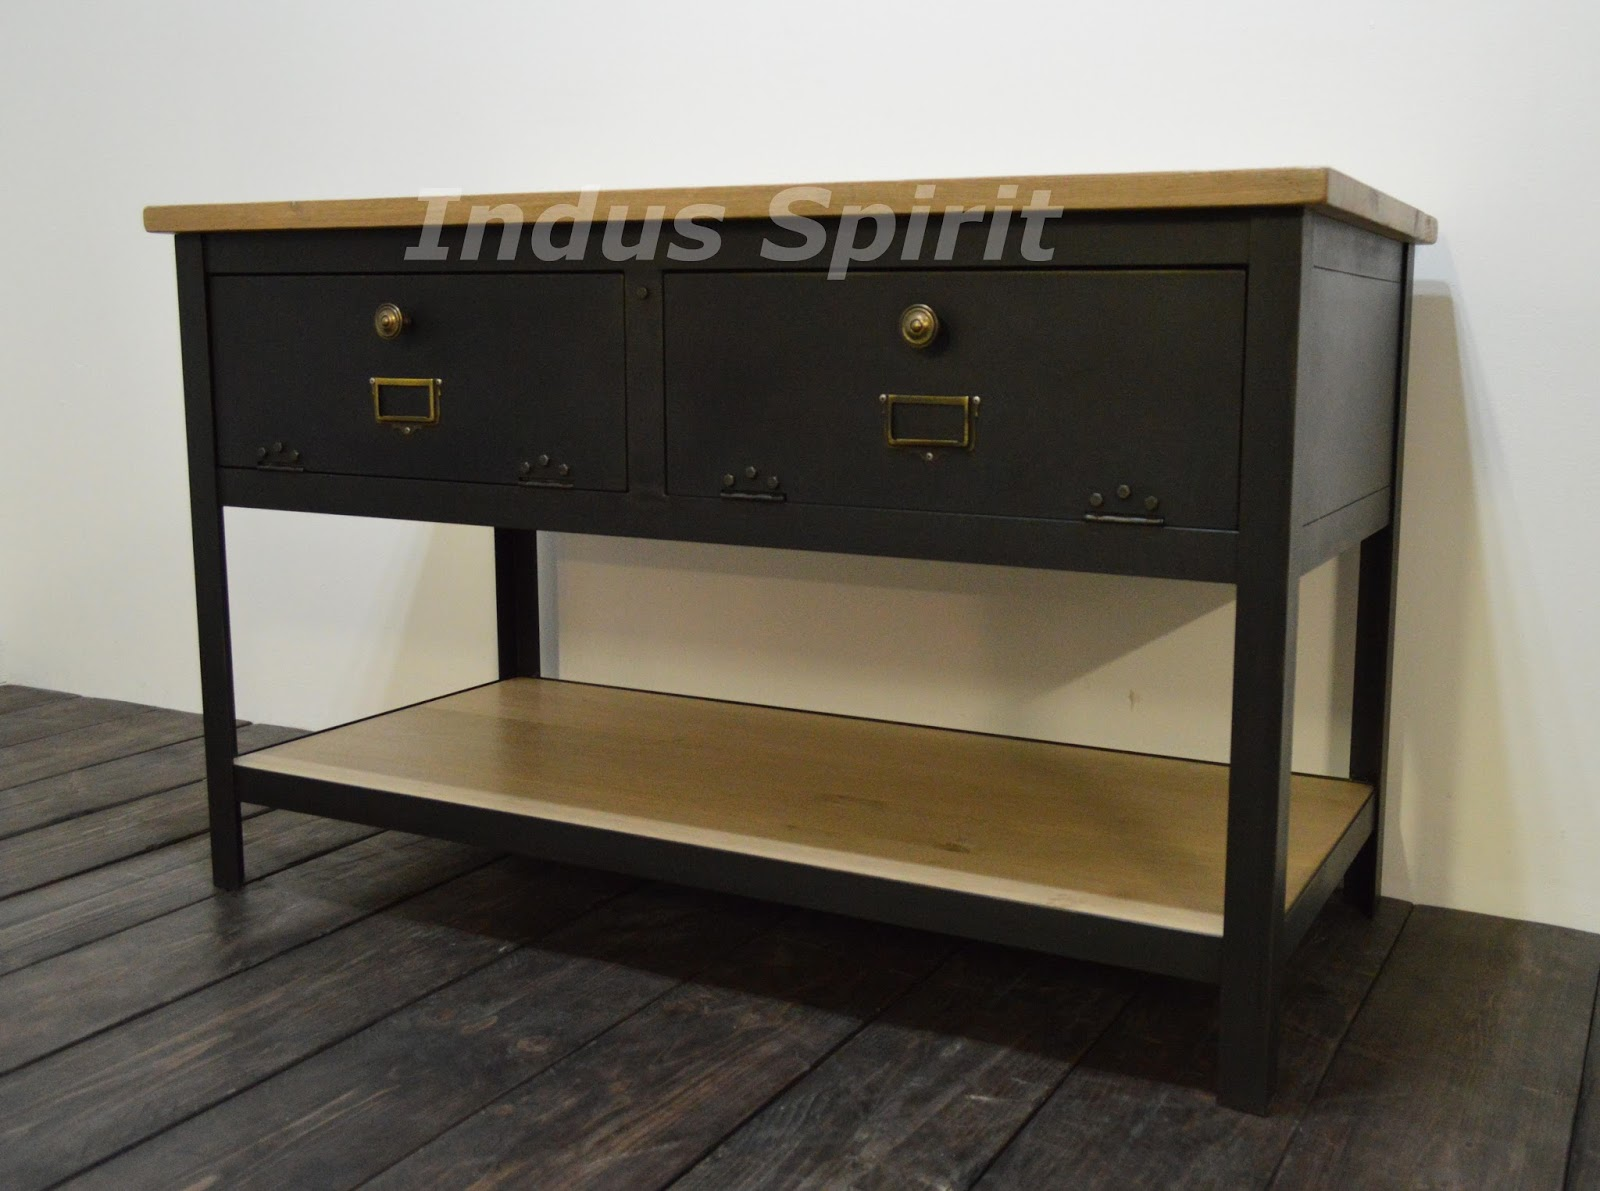 meuble industriel d coration industrielle meuble de m tier lyon boutique indus spirit. Black Bedroom Furniture Sets. Home Design Ideas